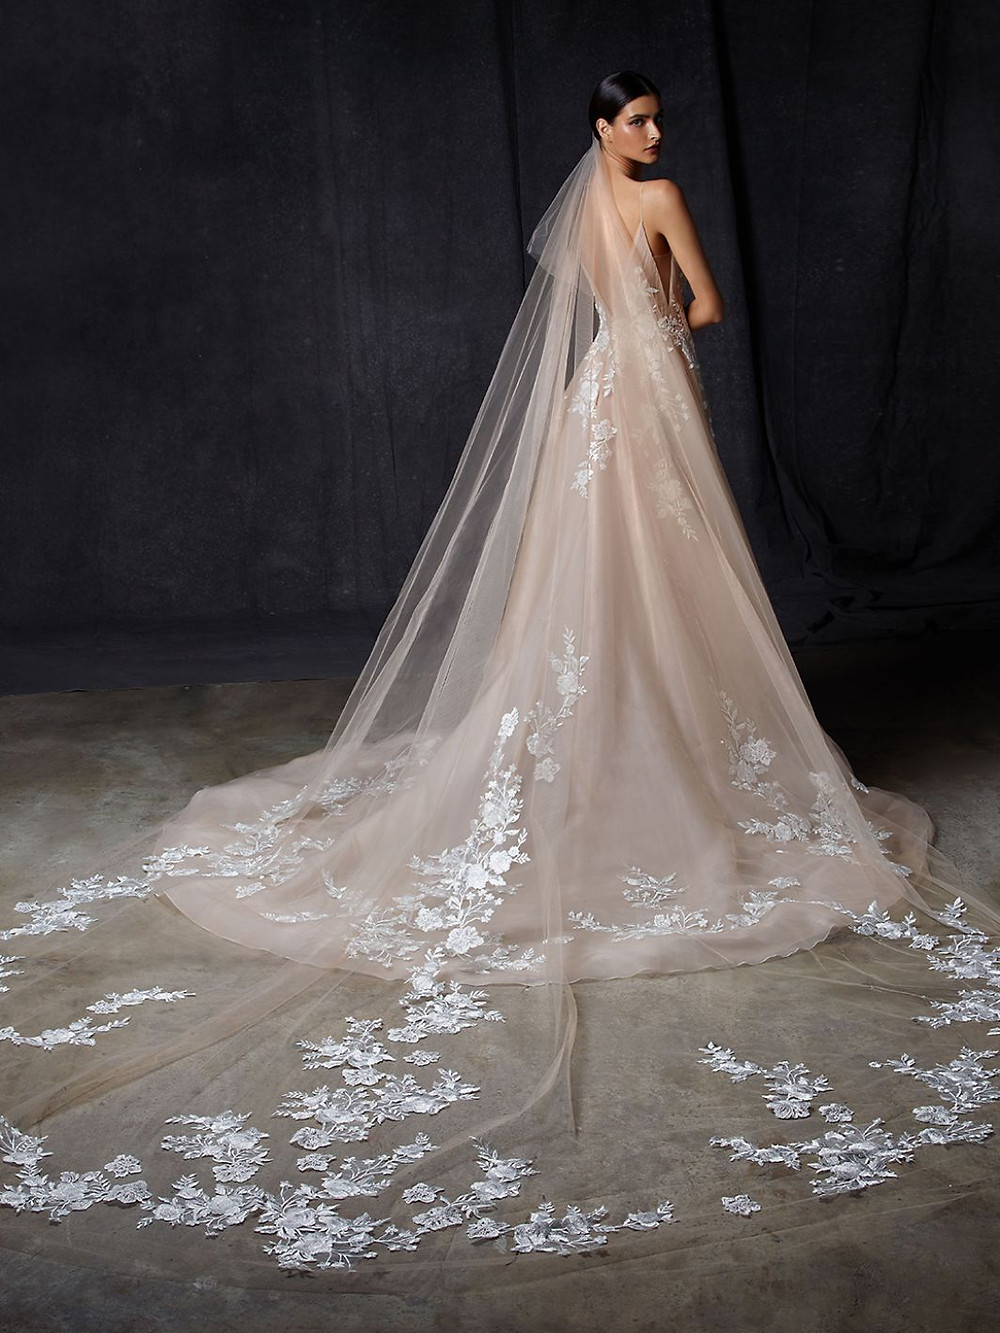 An Enzoani blush, tulle ball gown wedding dress with lace, thin straps, a long train and a veil